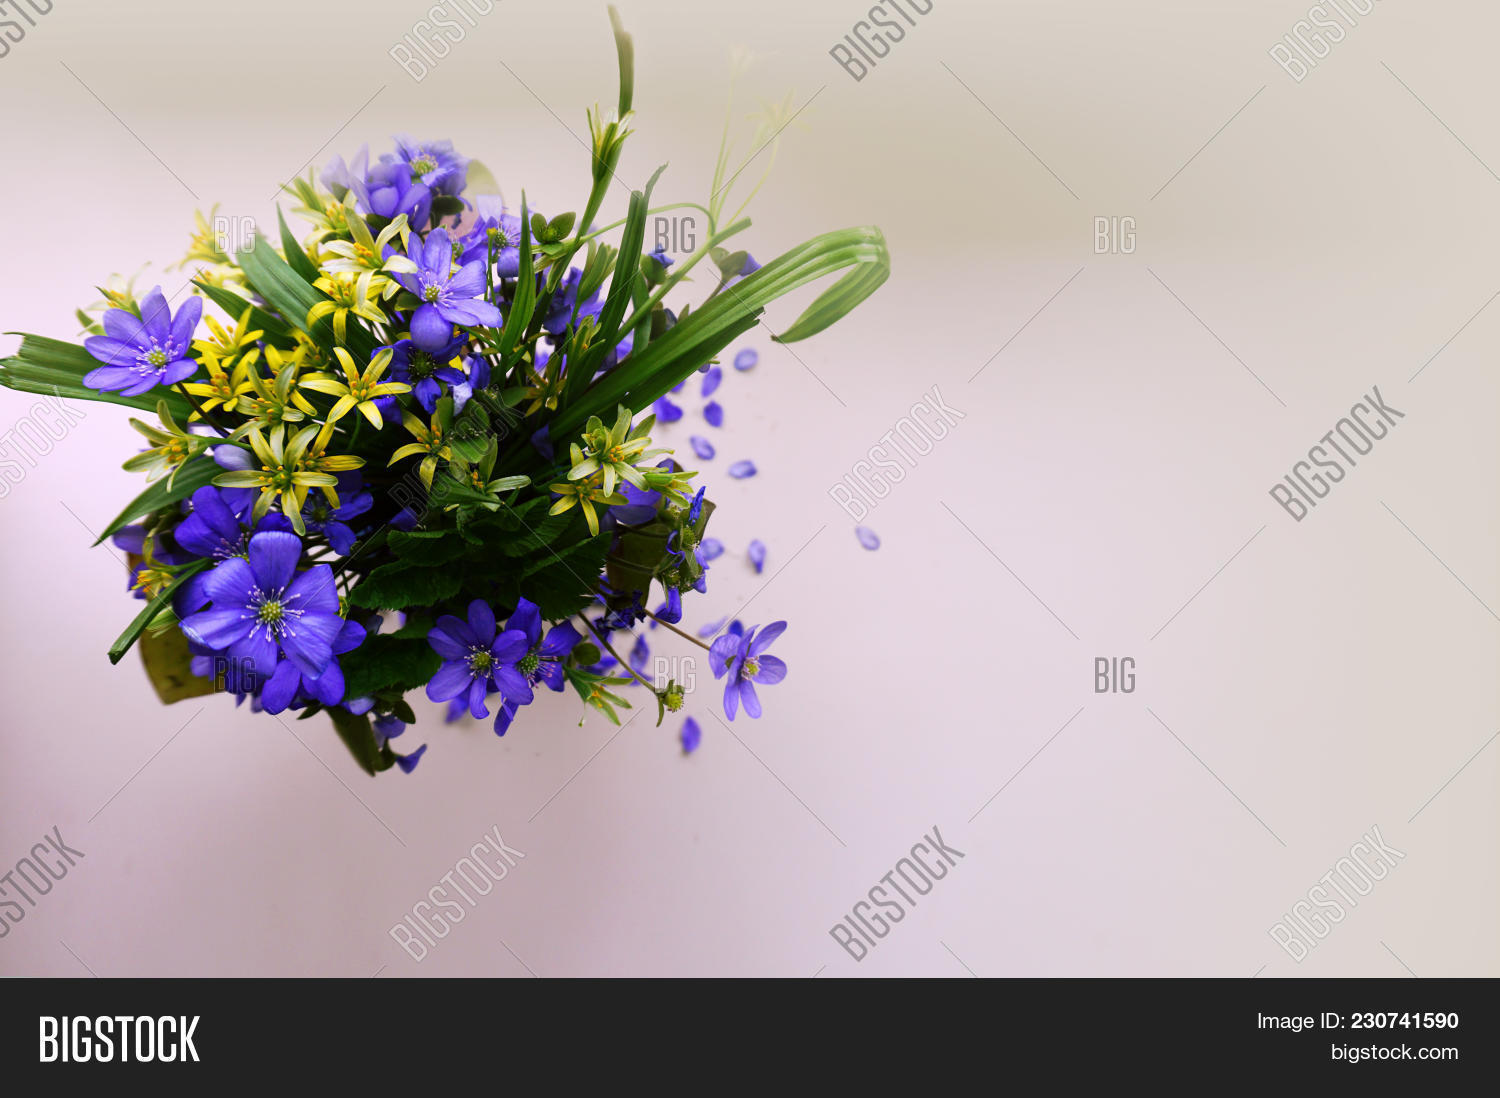 1 Small Neat Bouquet Image Photo Free Trial Bigstock